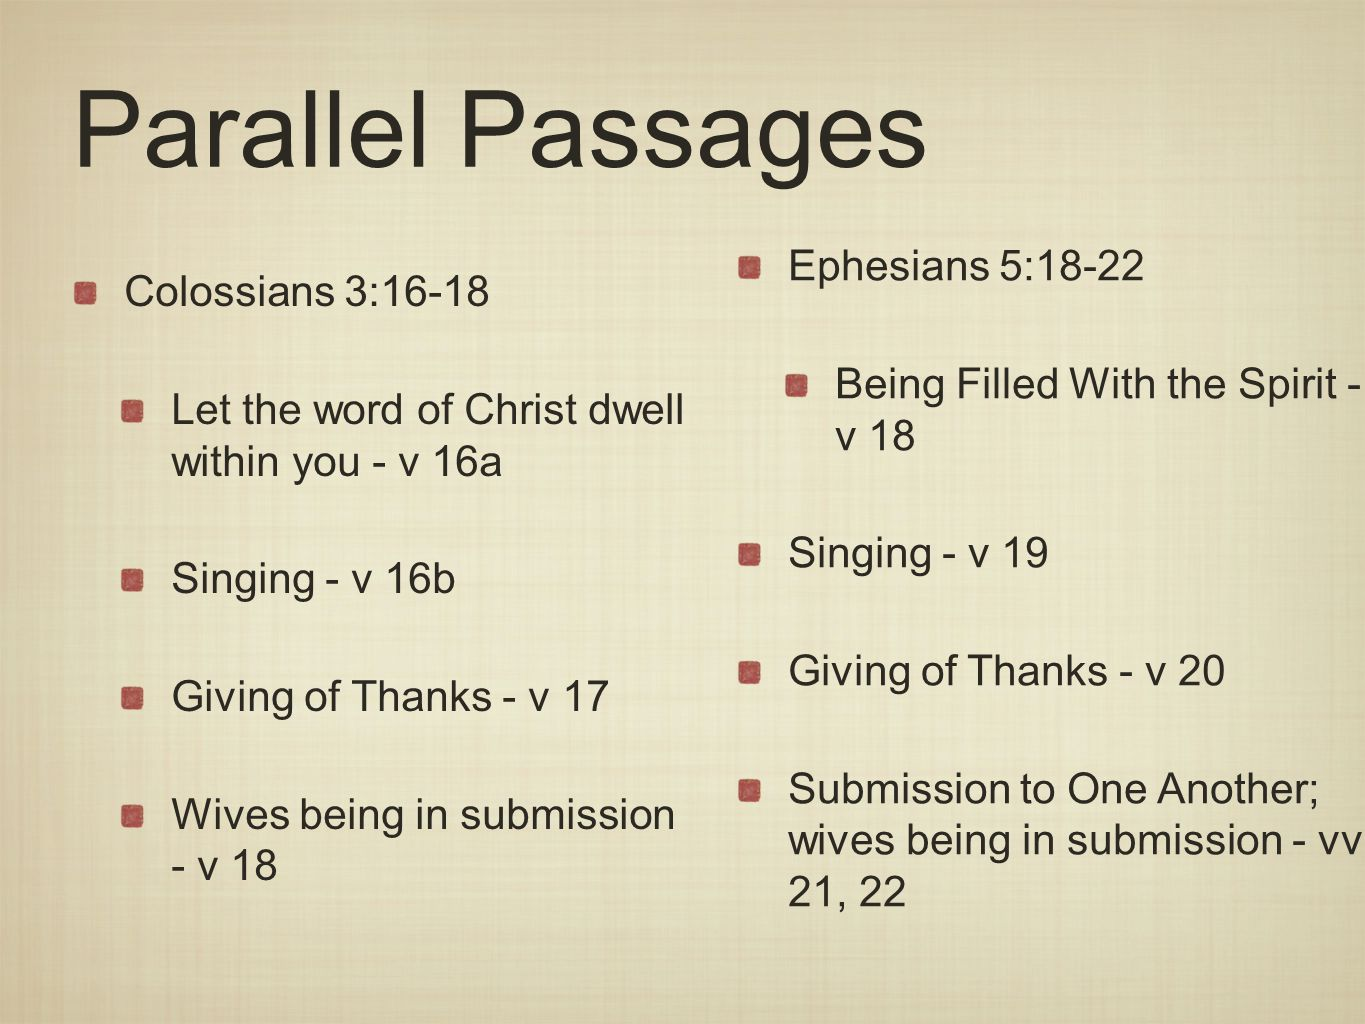 Parallel Passages Colossians 3:16-18 Let the word of Christ dwell within you - v 16a Singing - v 16b Giving of Thanks - v 17 Wives being in submission